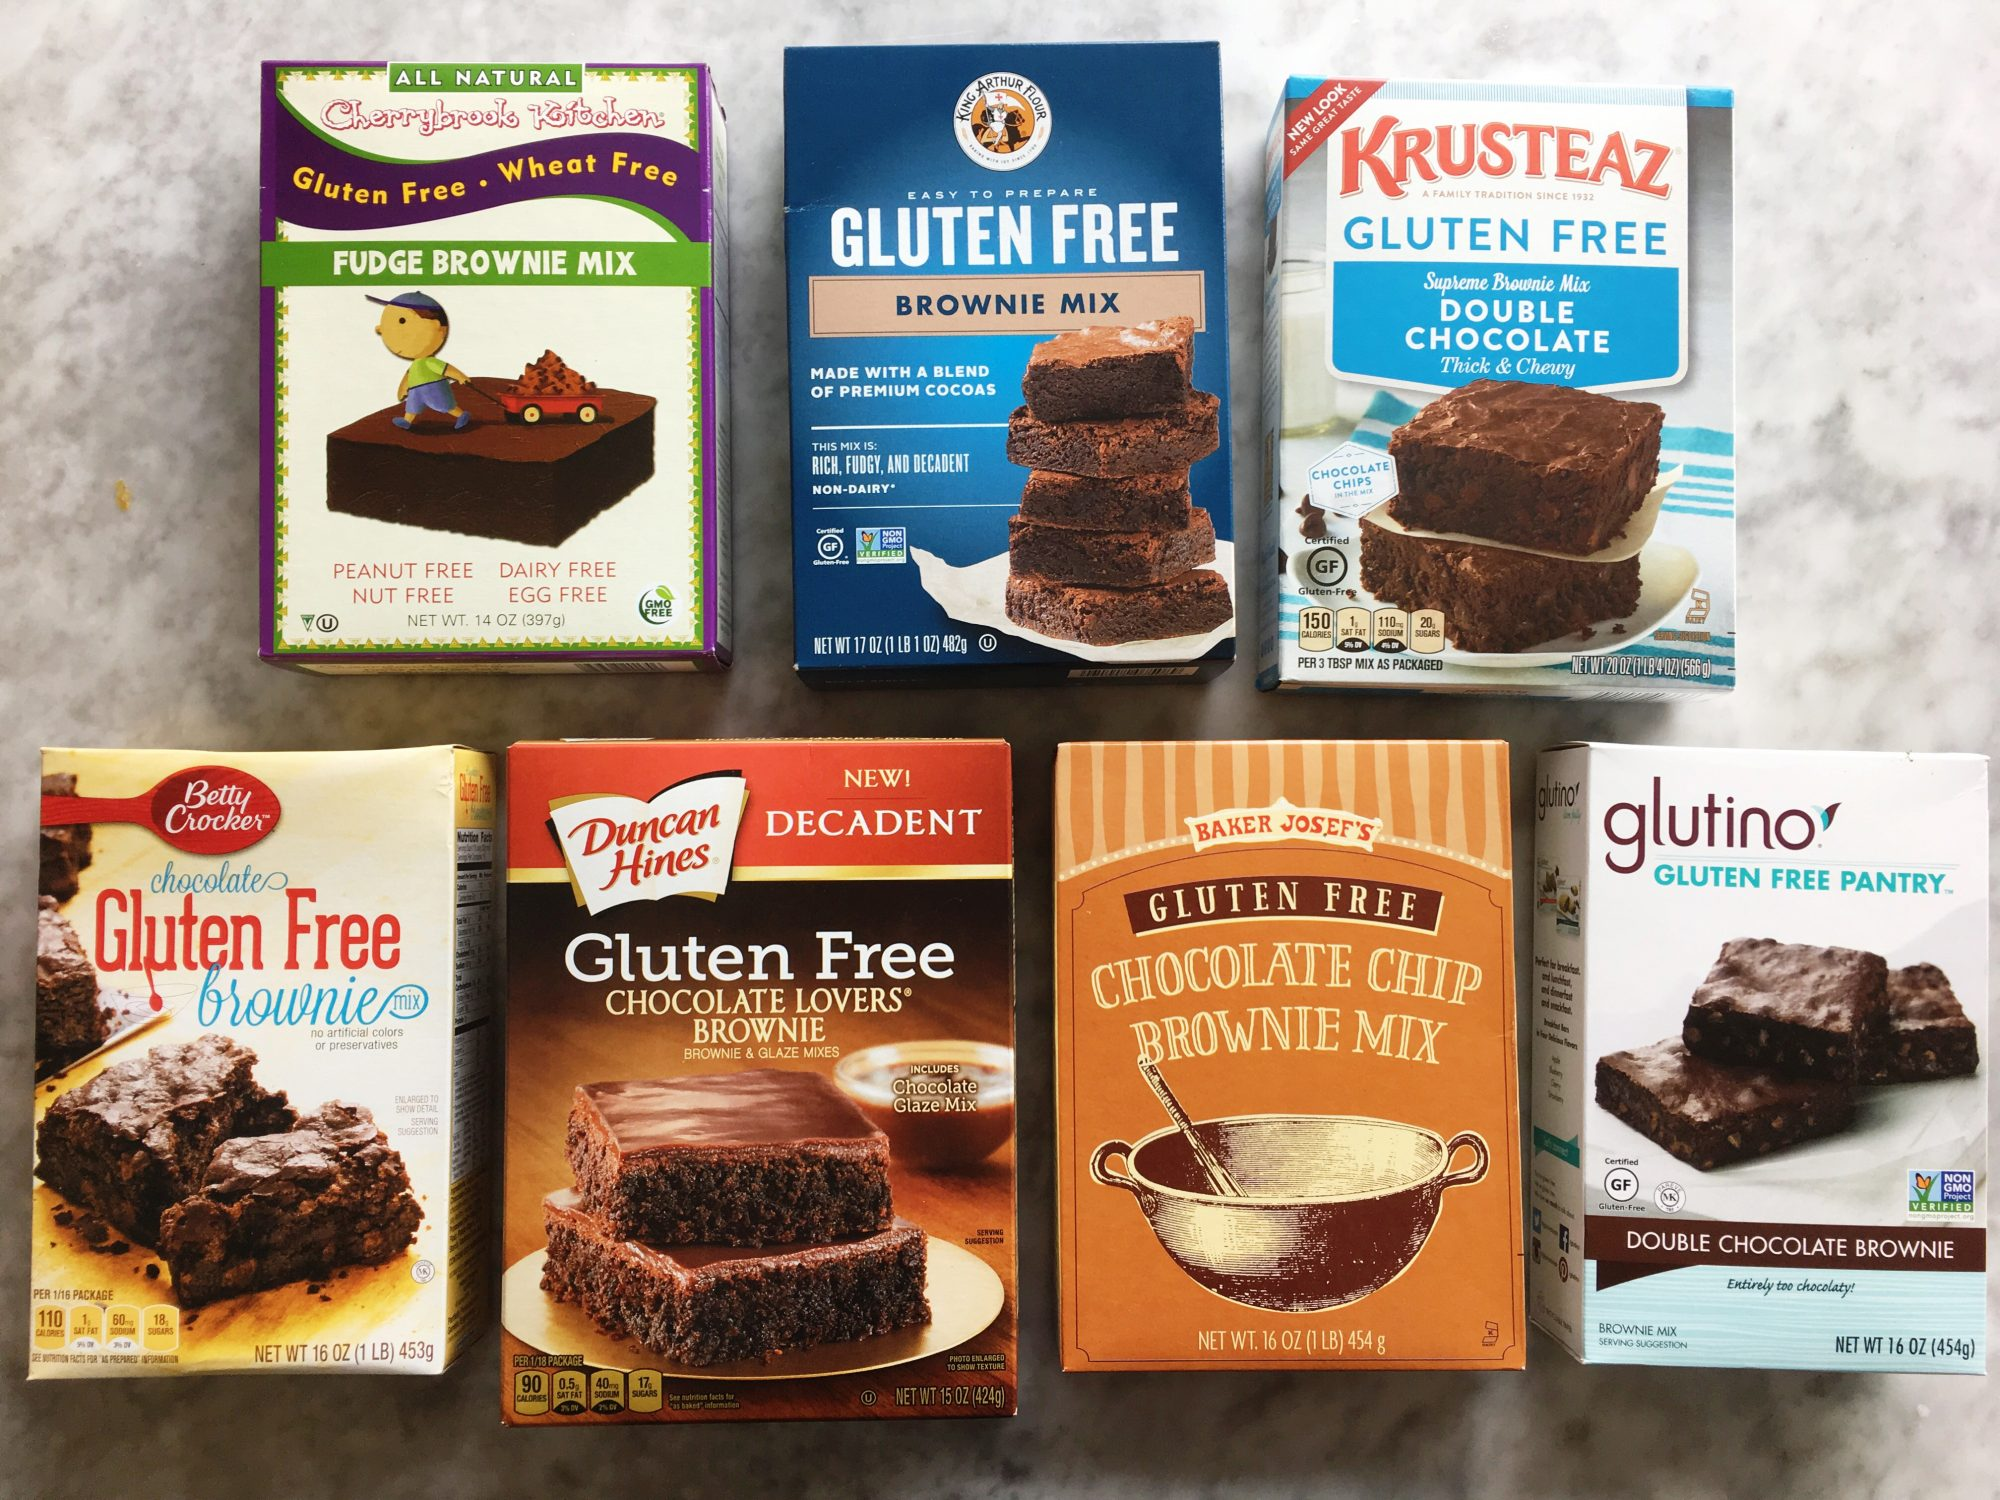 We Tried 7 Gluten-Free Boxed Brownie Mixes and This Was Our Favorite